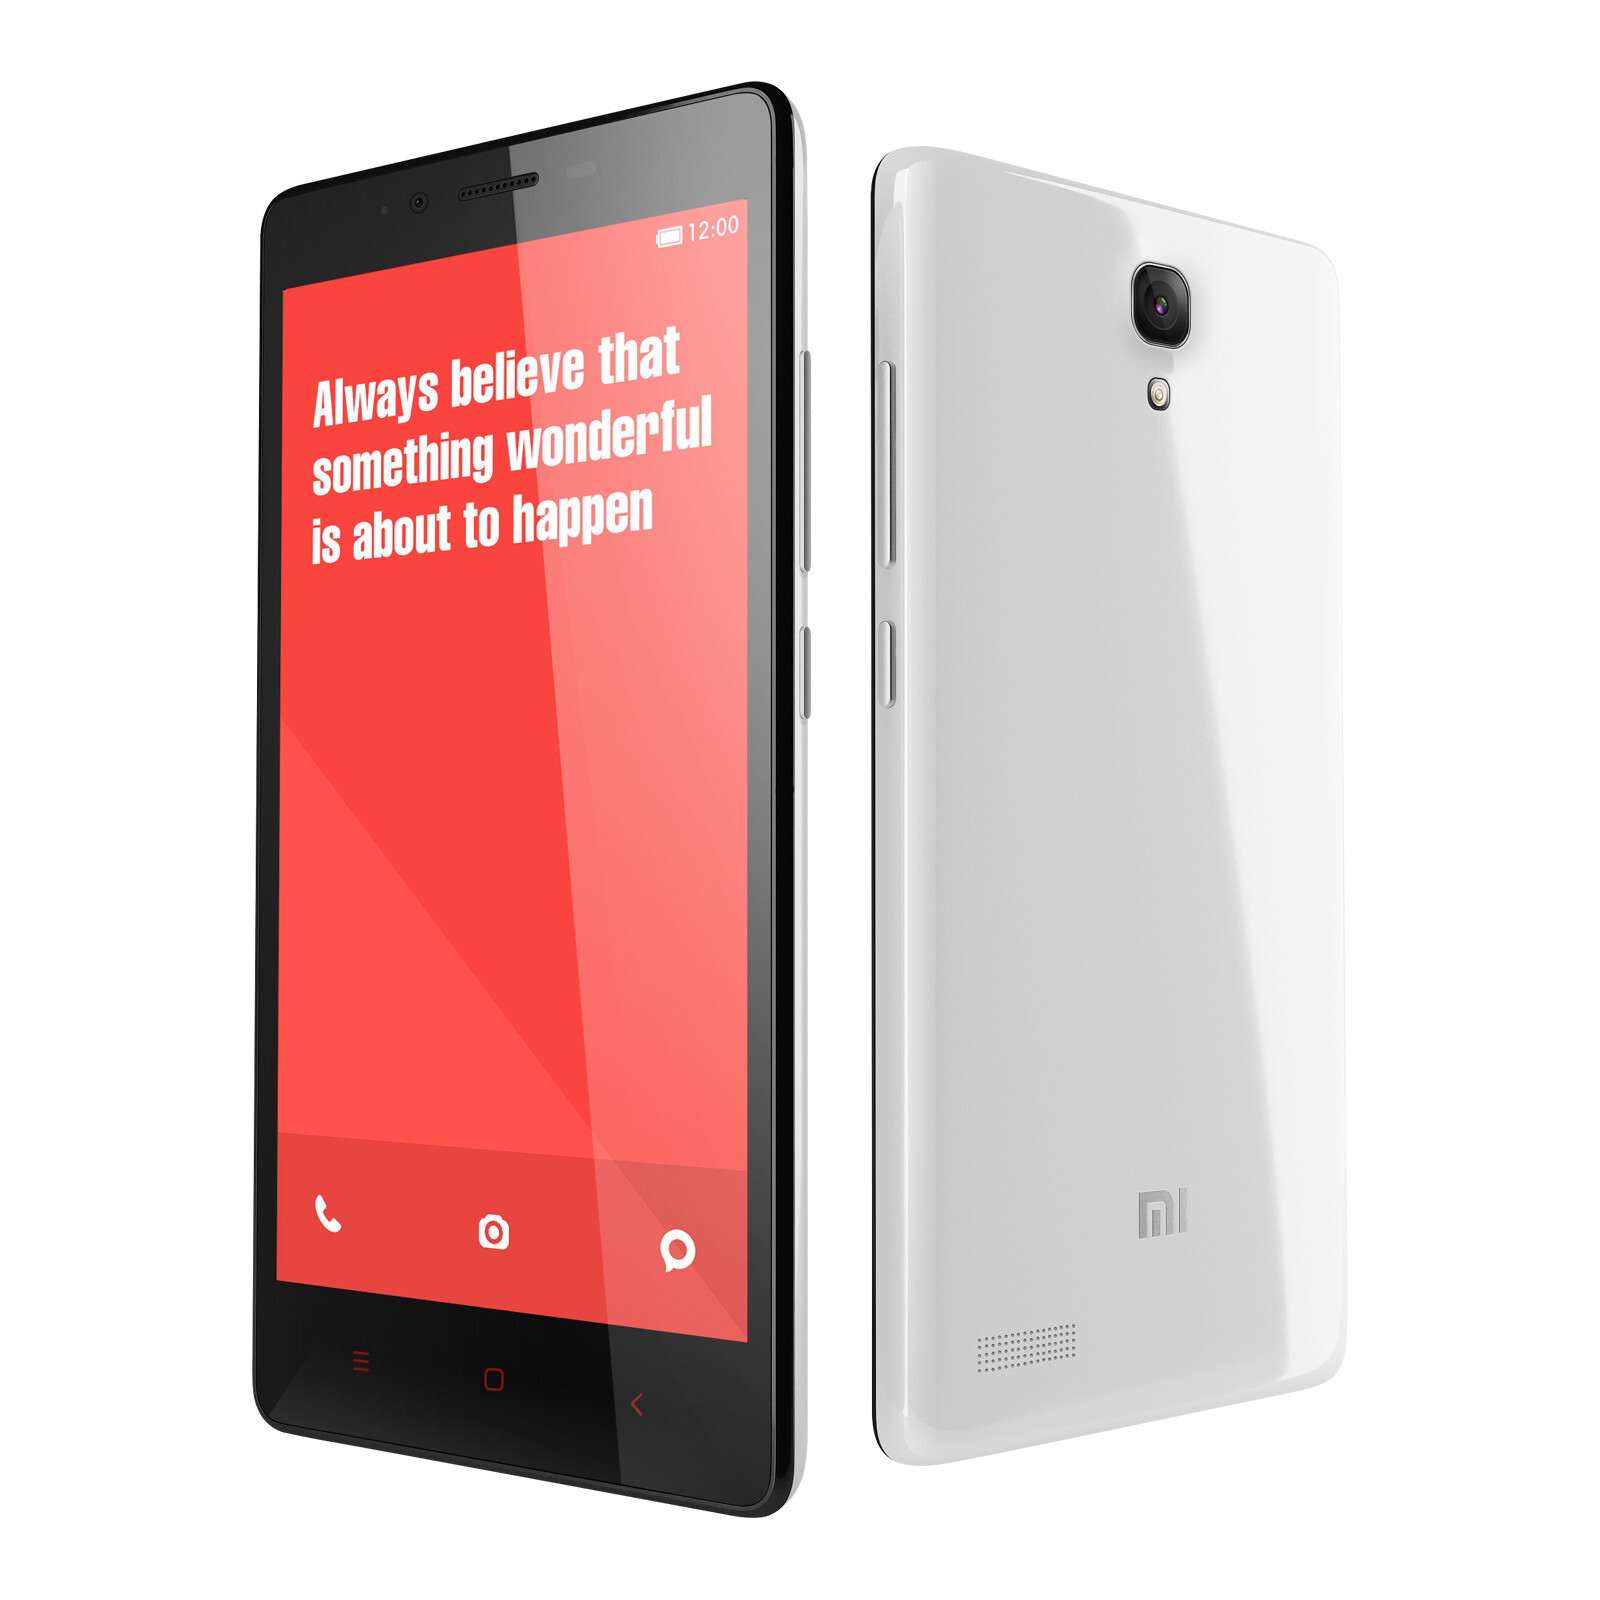 Xiaomi launches the Redmi Note Prime in India, an updated